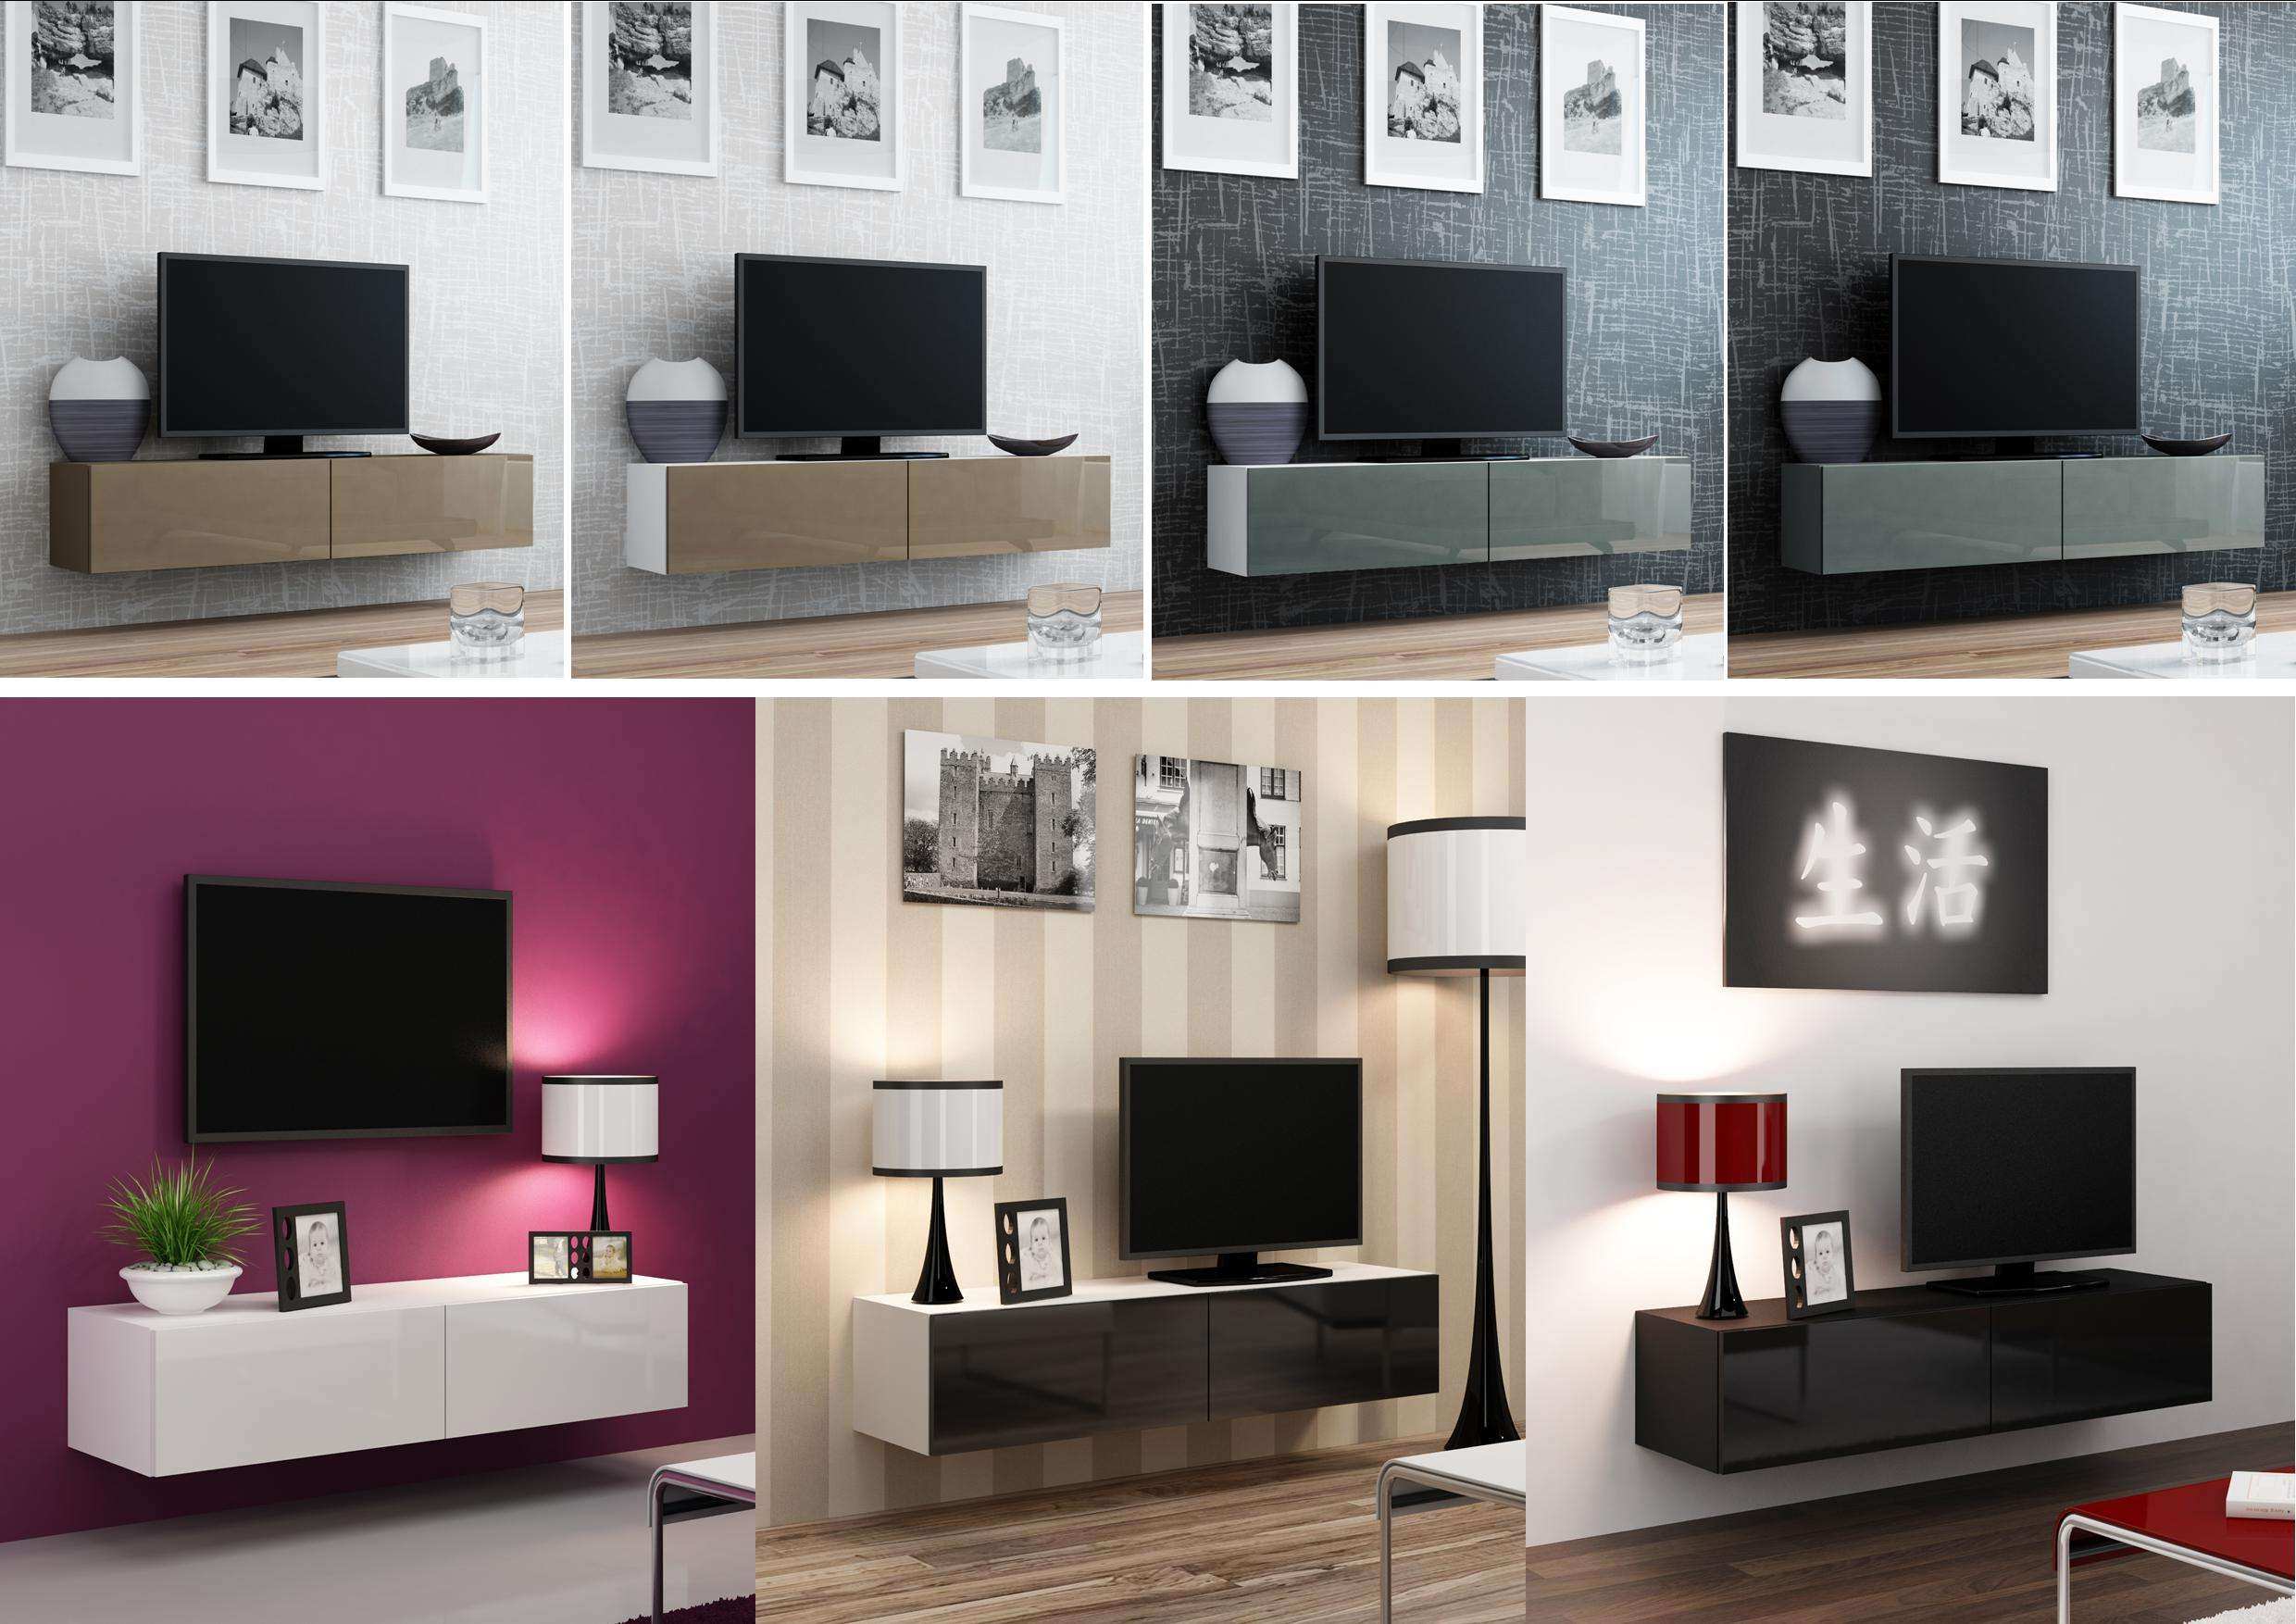 High Gloss Tv Stand Cabinet Wall Mountable | Floating Throughout High Gloss Tv Cabinets (View 9 of 20)